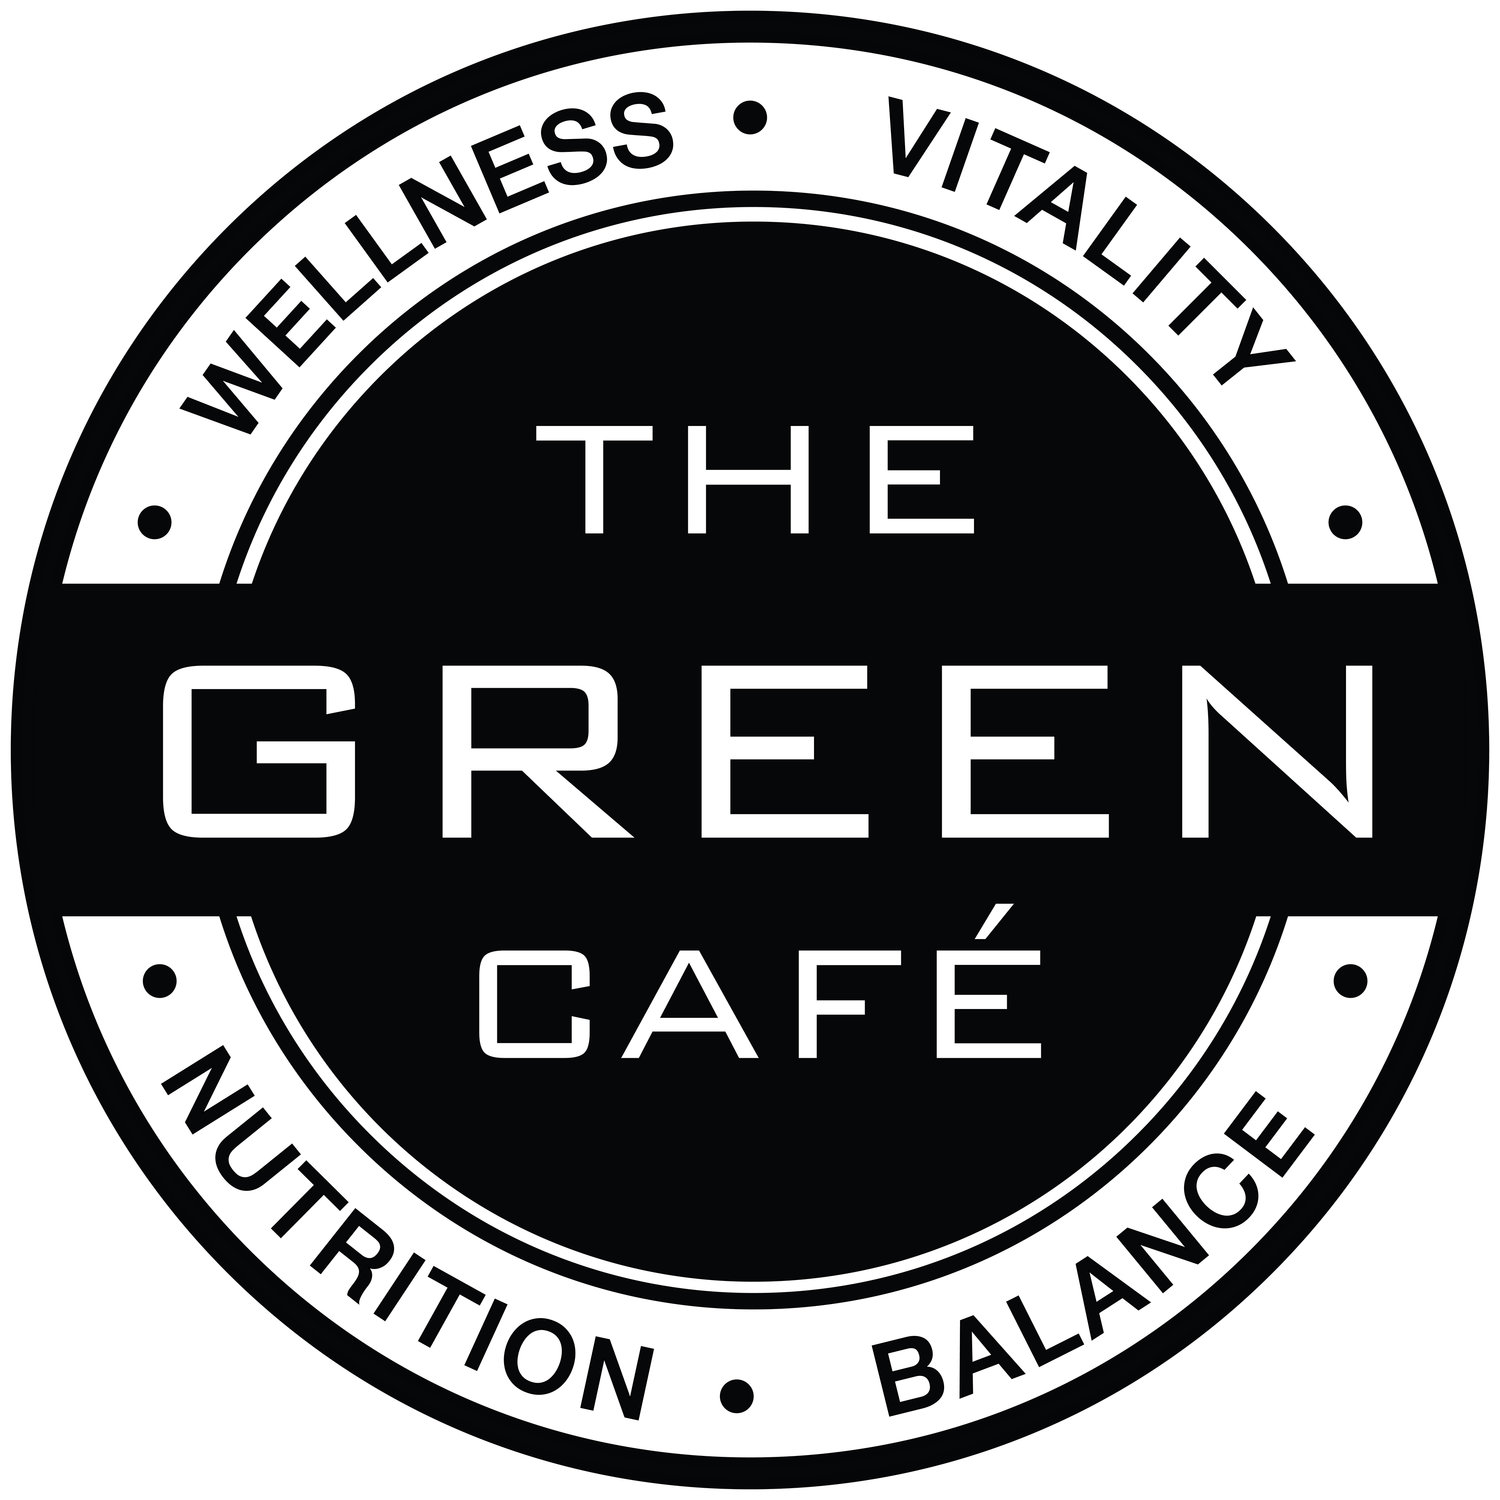 Green Cafe Lakeville